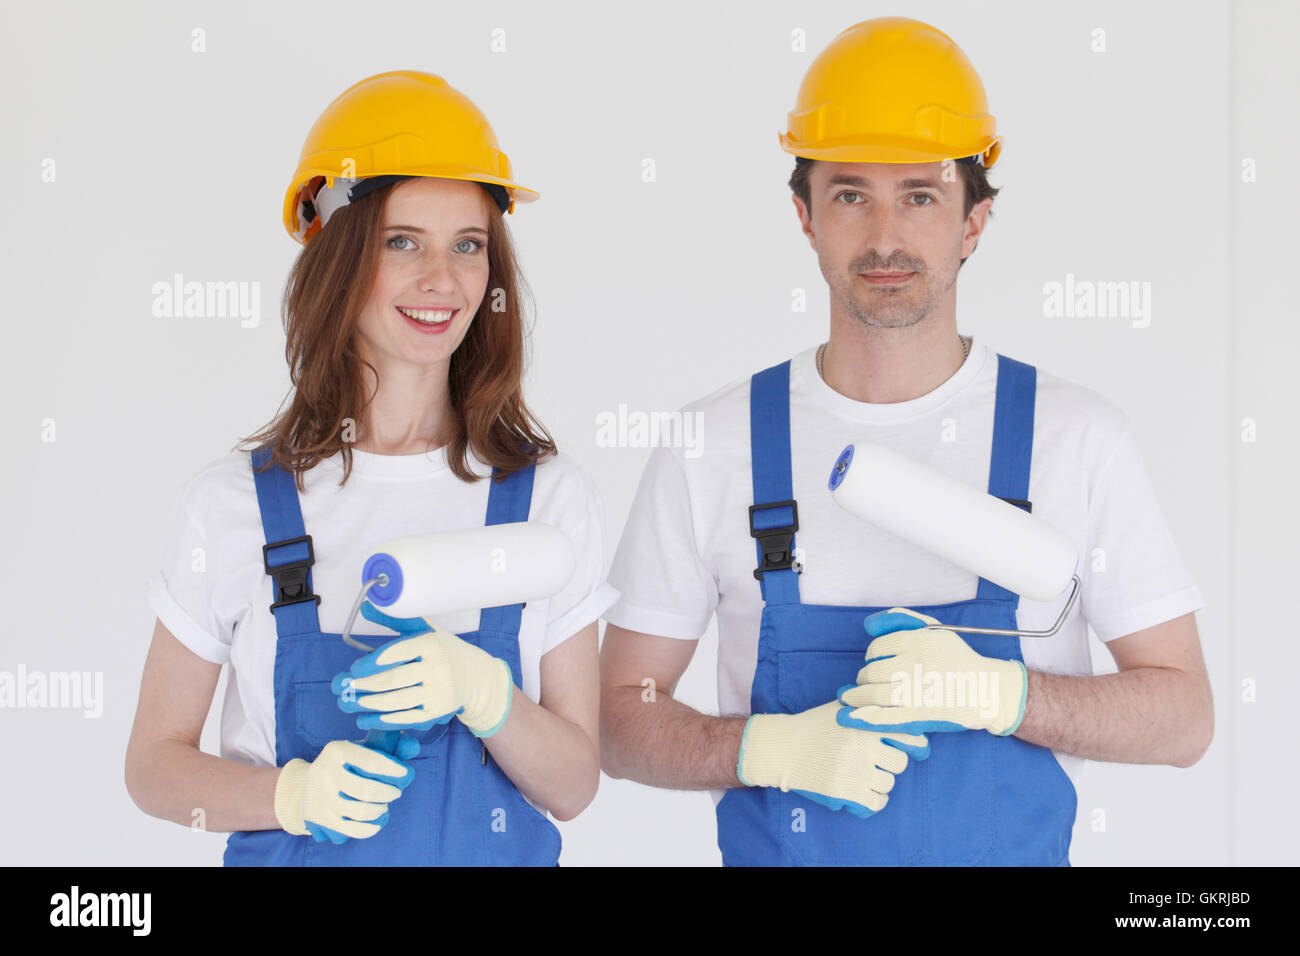 Happy couple in uniform holding paint rollers ready to work - Stock Image